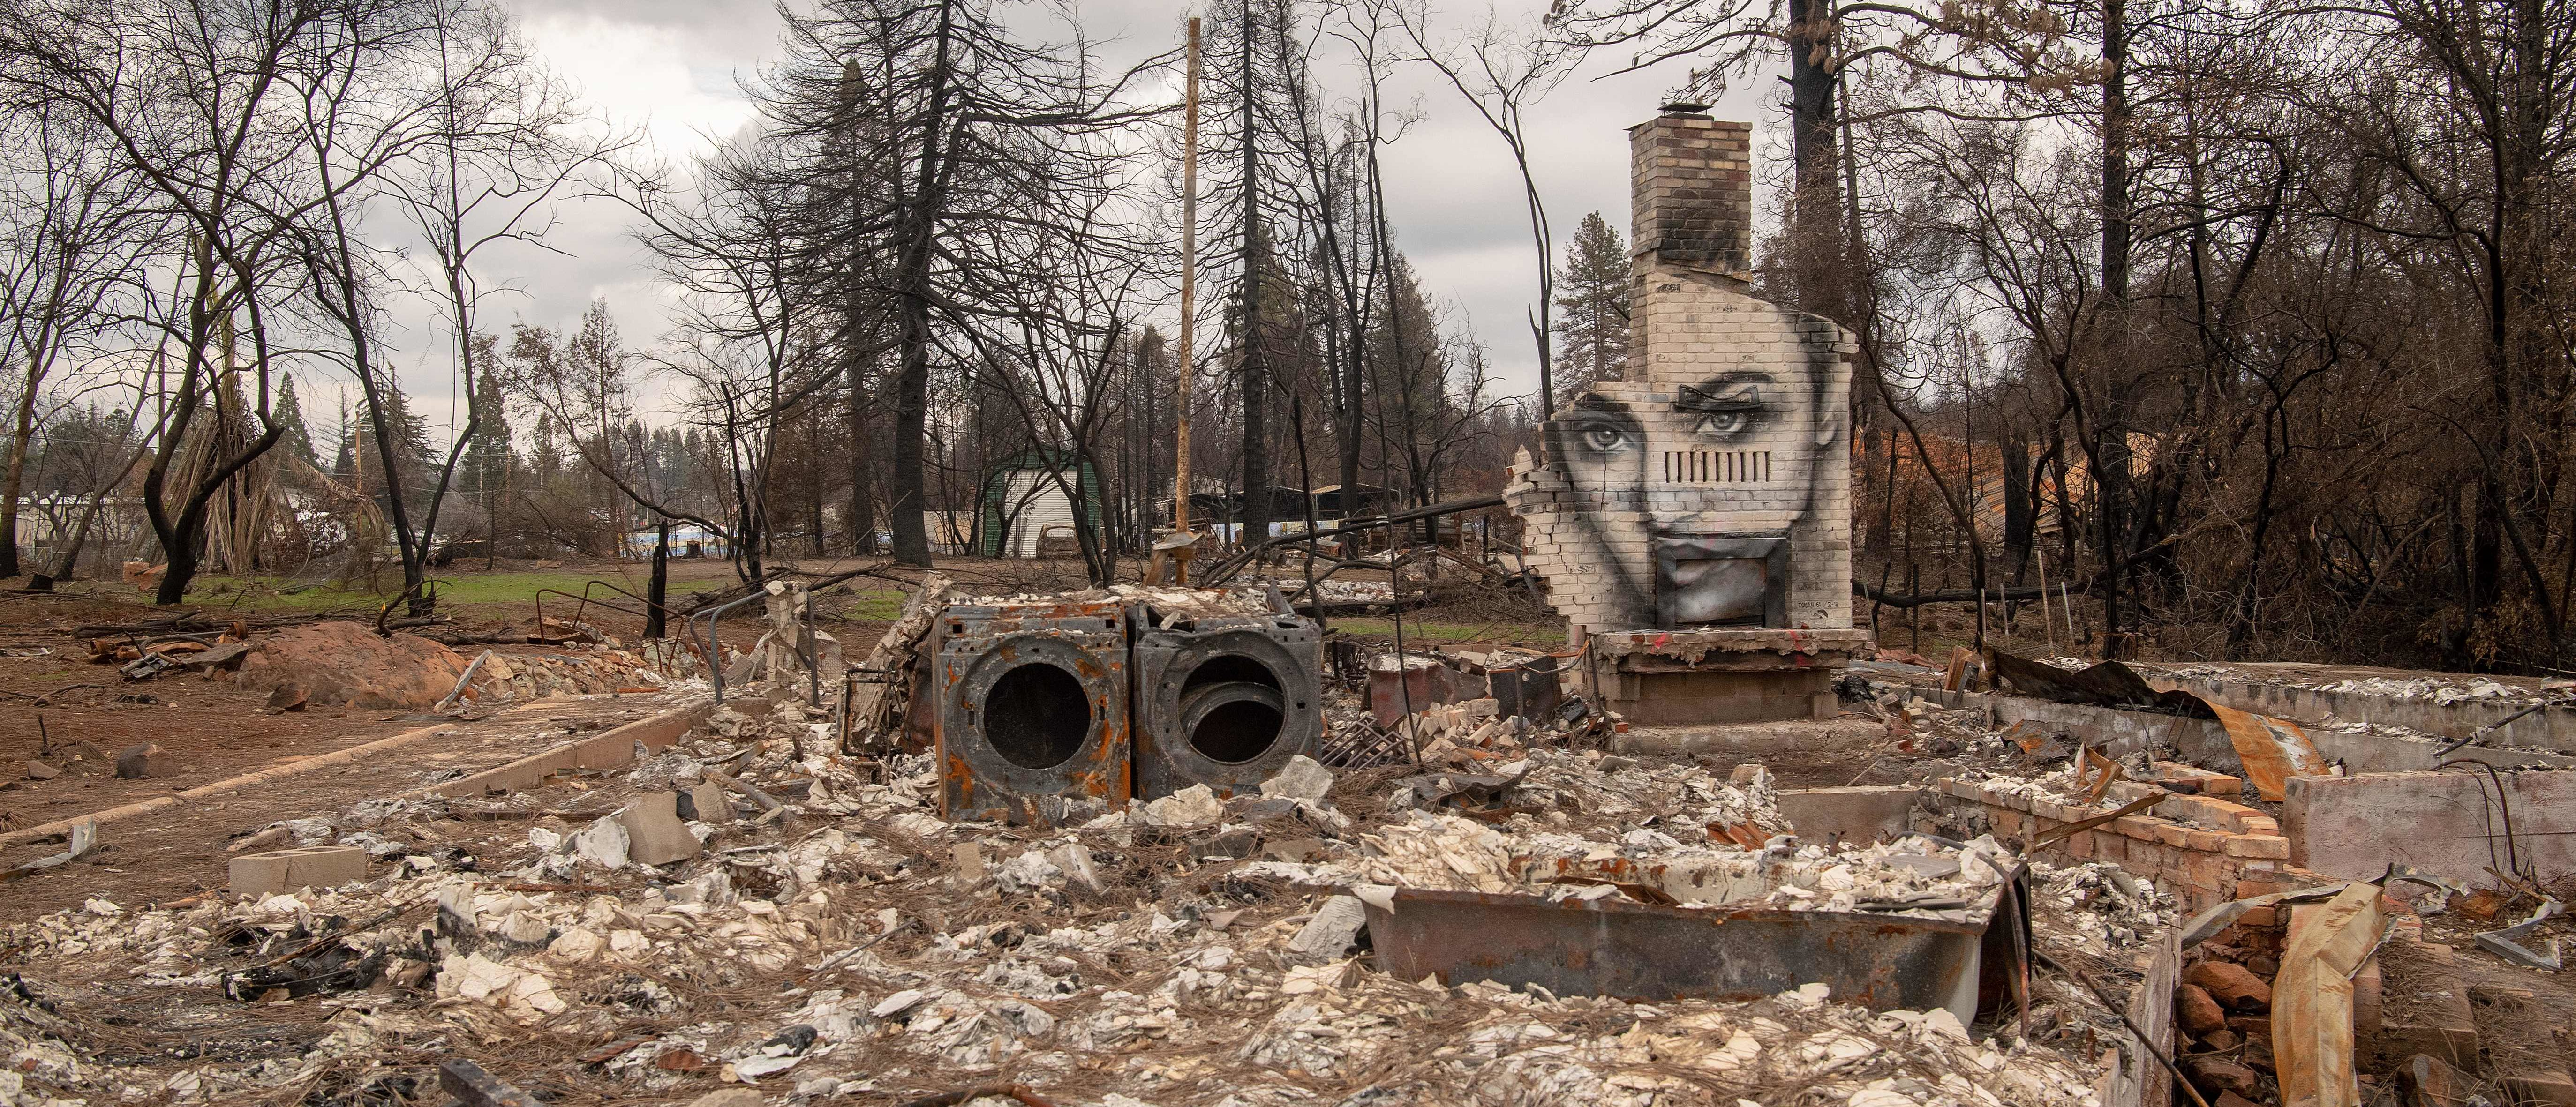 A mural painted by Shane Grammar is seen on a chimney that remains at a property burned by the Camp fire in Paradise, California on February 01, 2019. - California utility PG&E, facing billions of dollars in potential liabilities over its role in a series of deadly wildfires, filed for bankruptcy protection January 29, 2019. (Photo by Josh Edelson / AFP) (Photo credit should read JOSH EDELSON/AFP via Getty Images)